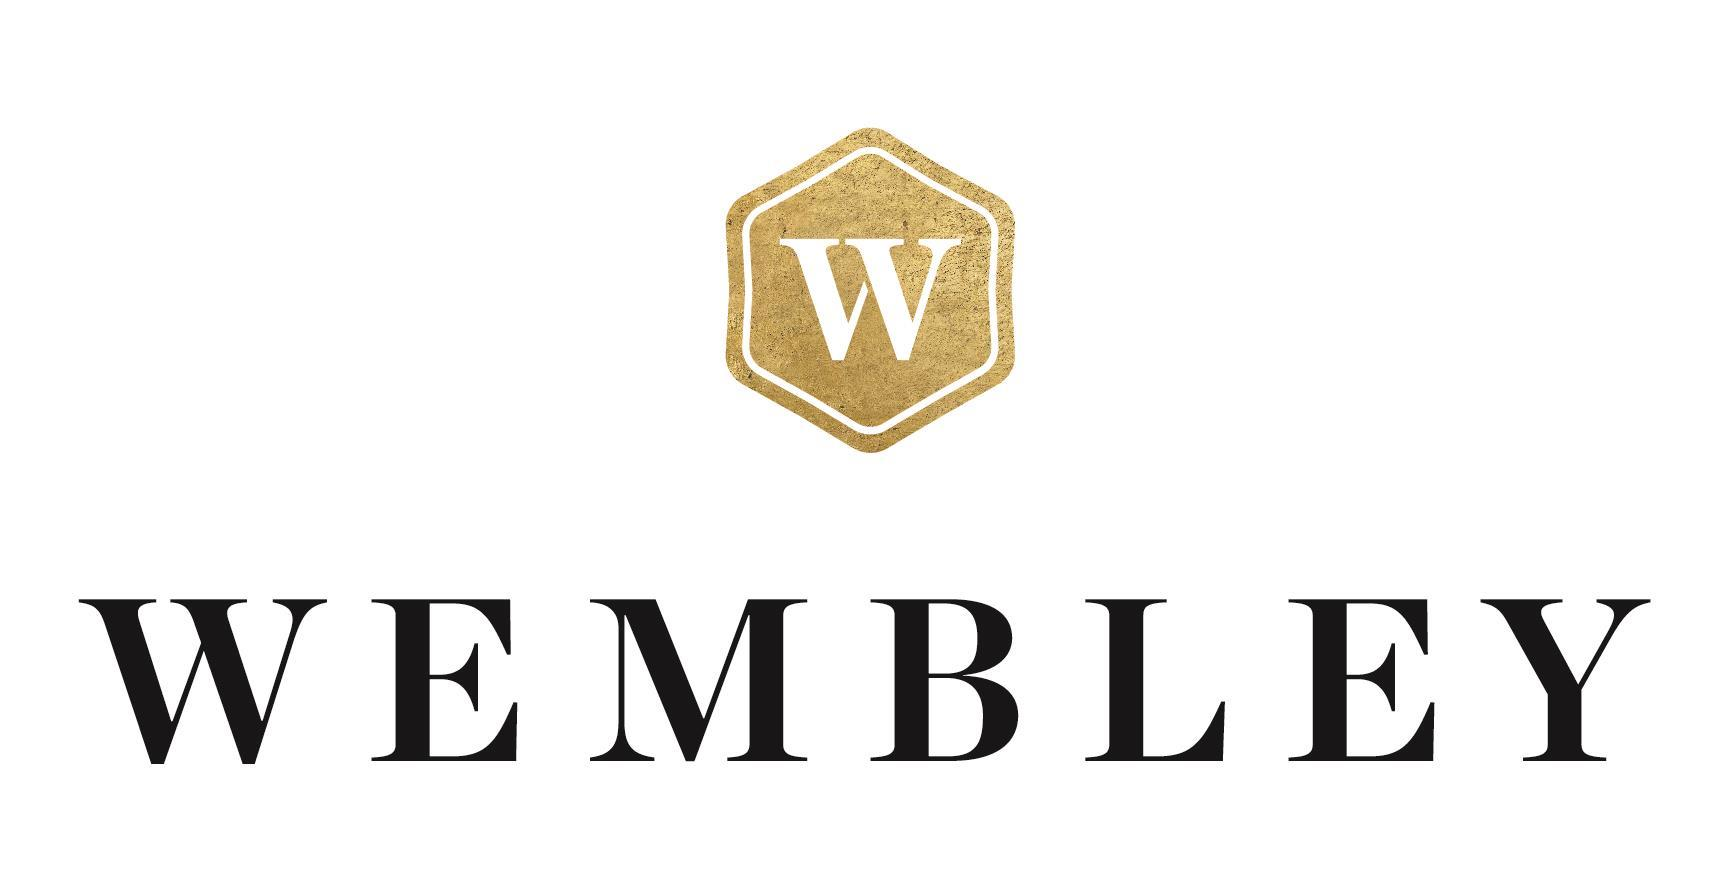 Wembley_Logo_CR_100716-05.jpg